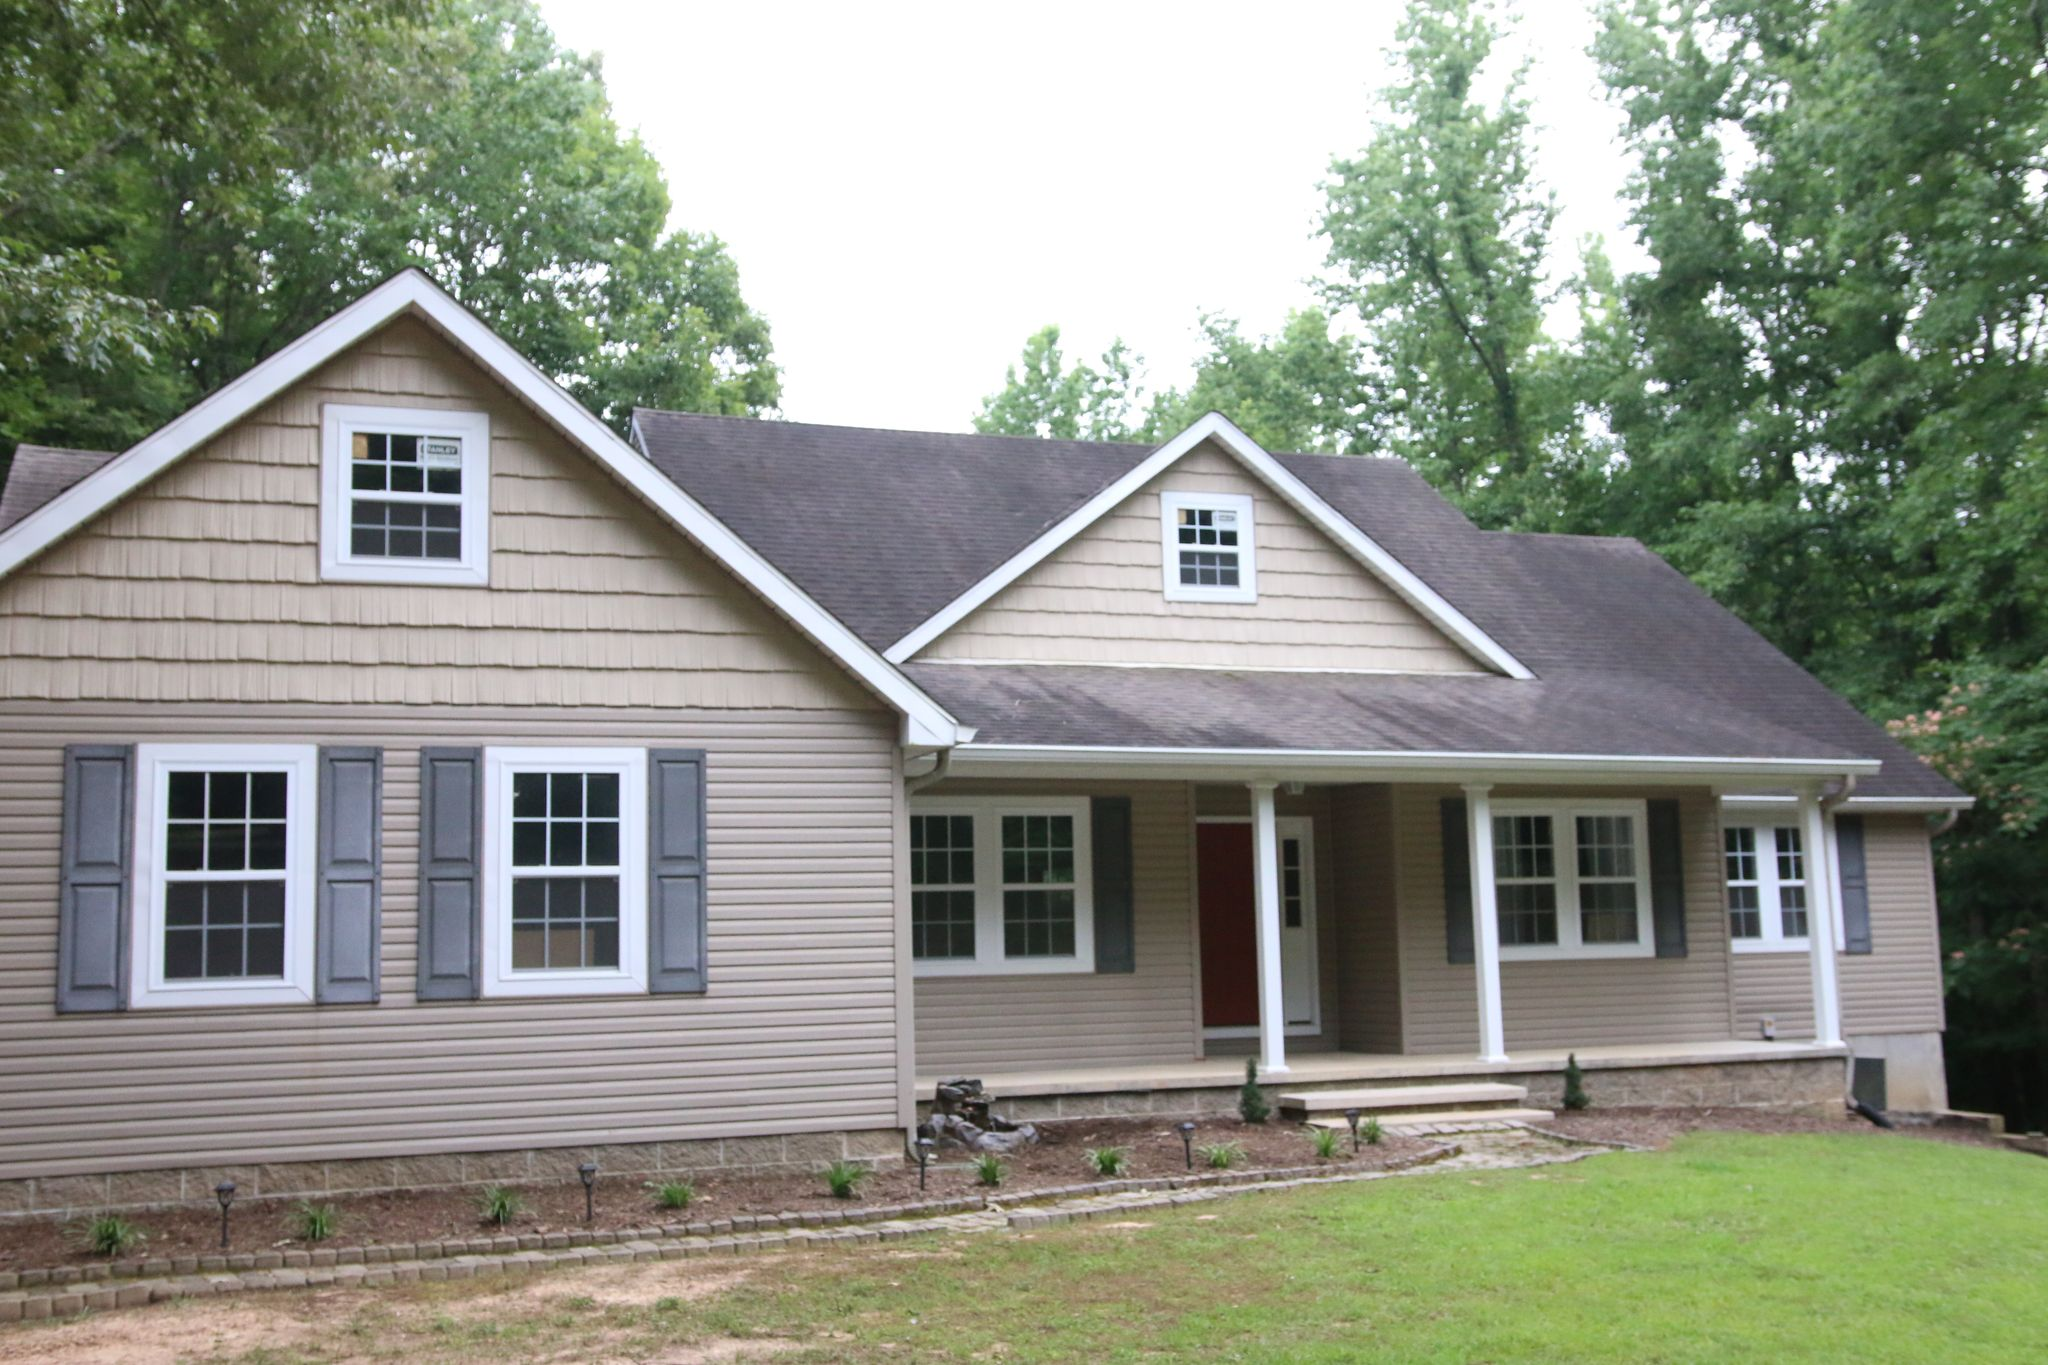 9445 highway 218 byp for sale paris tn